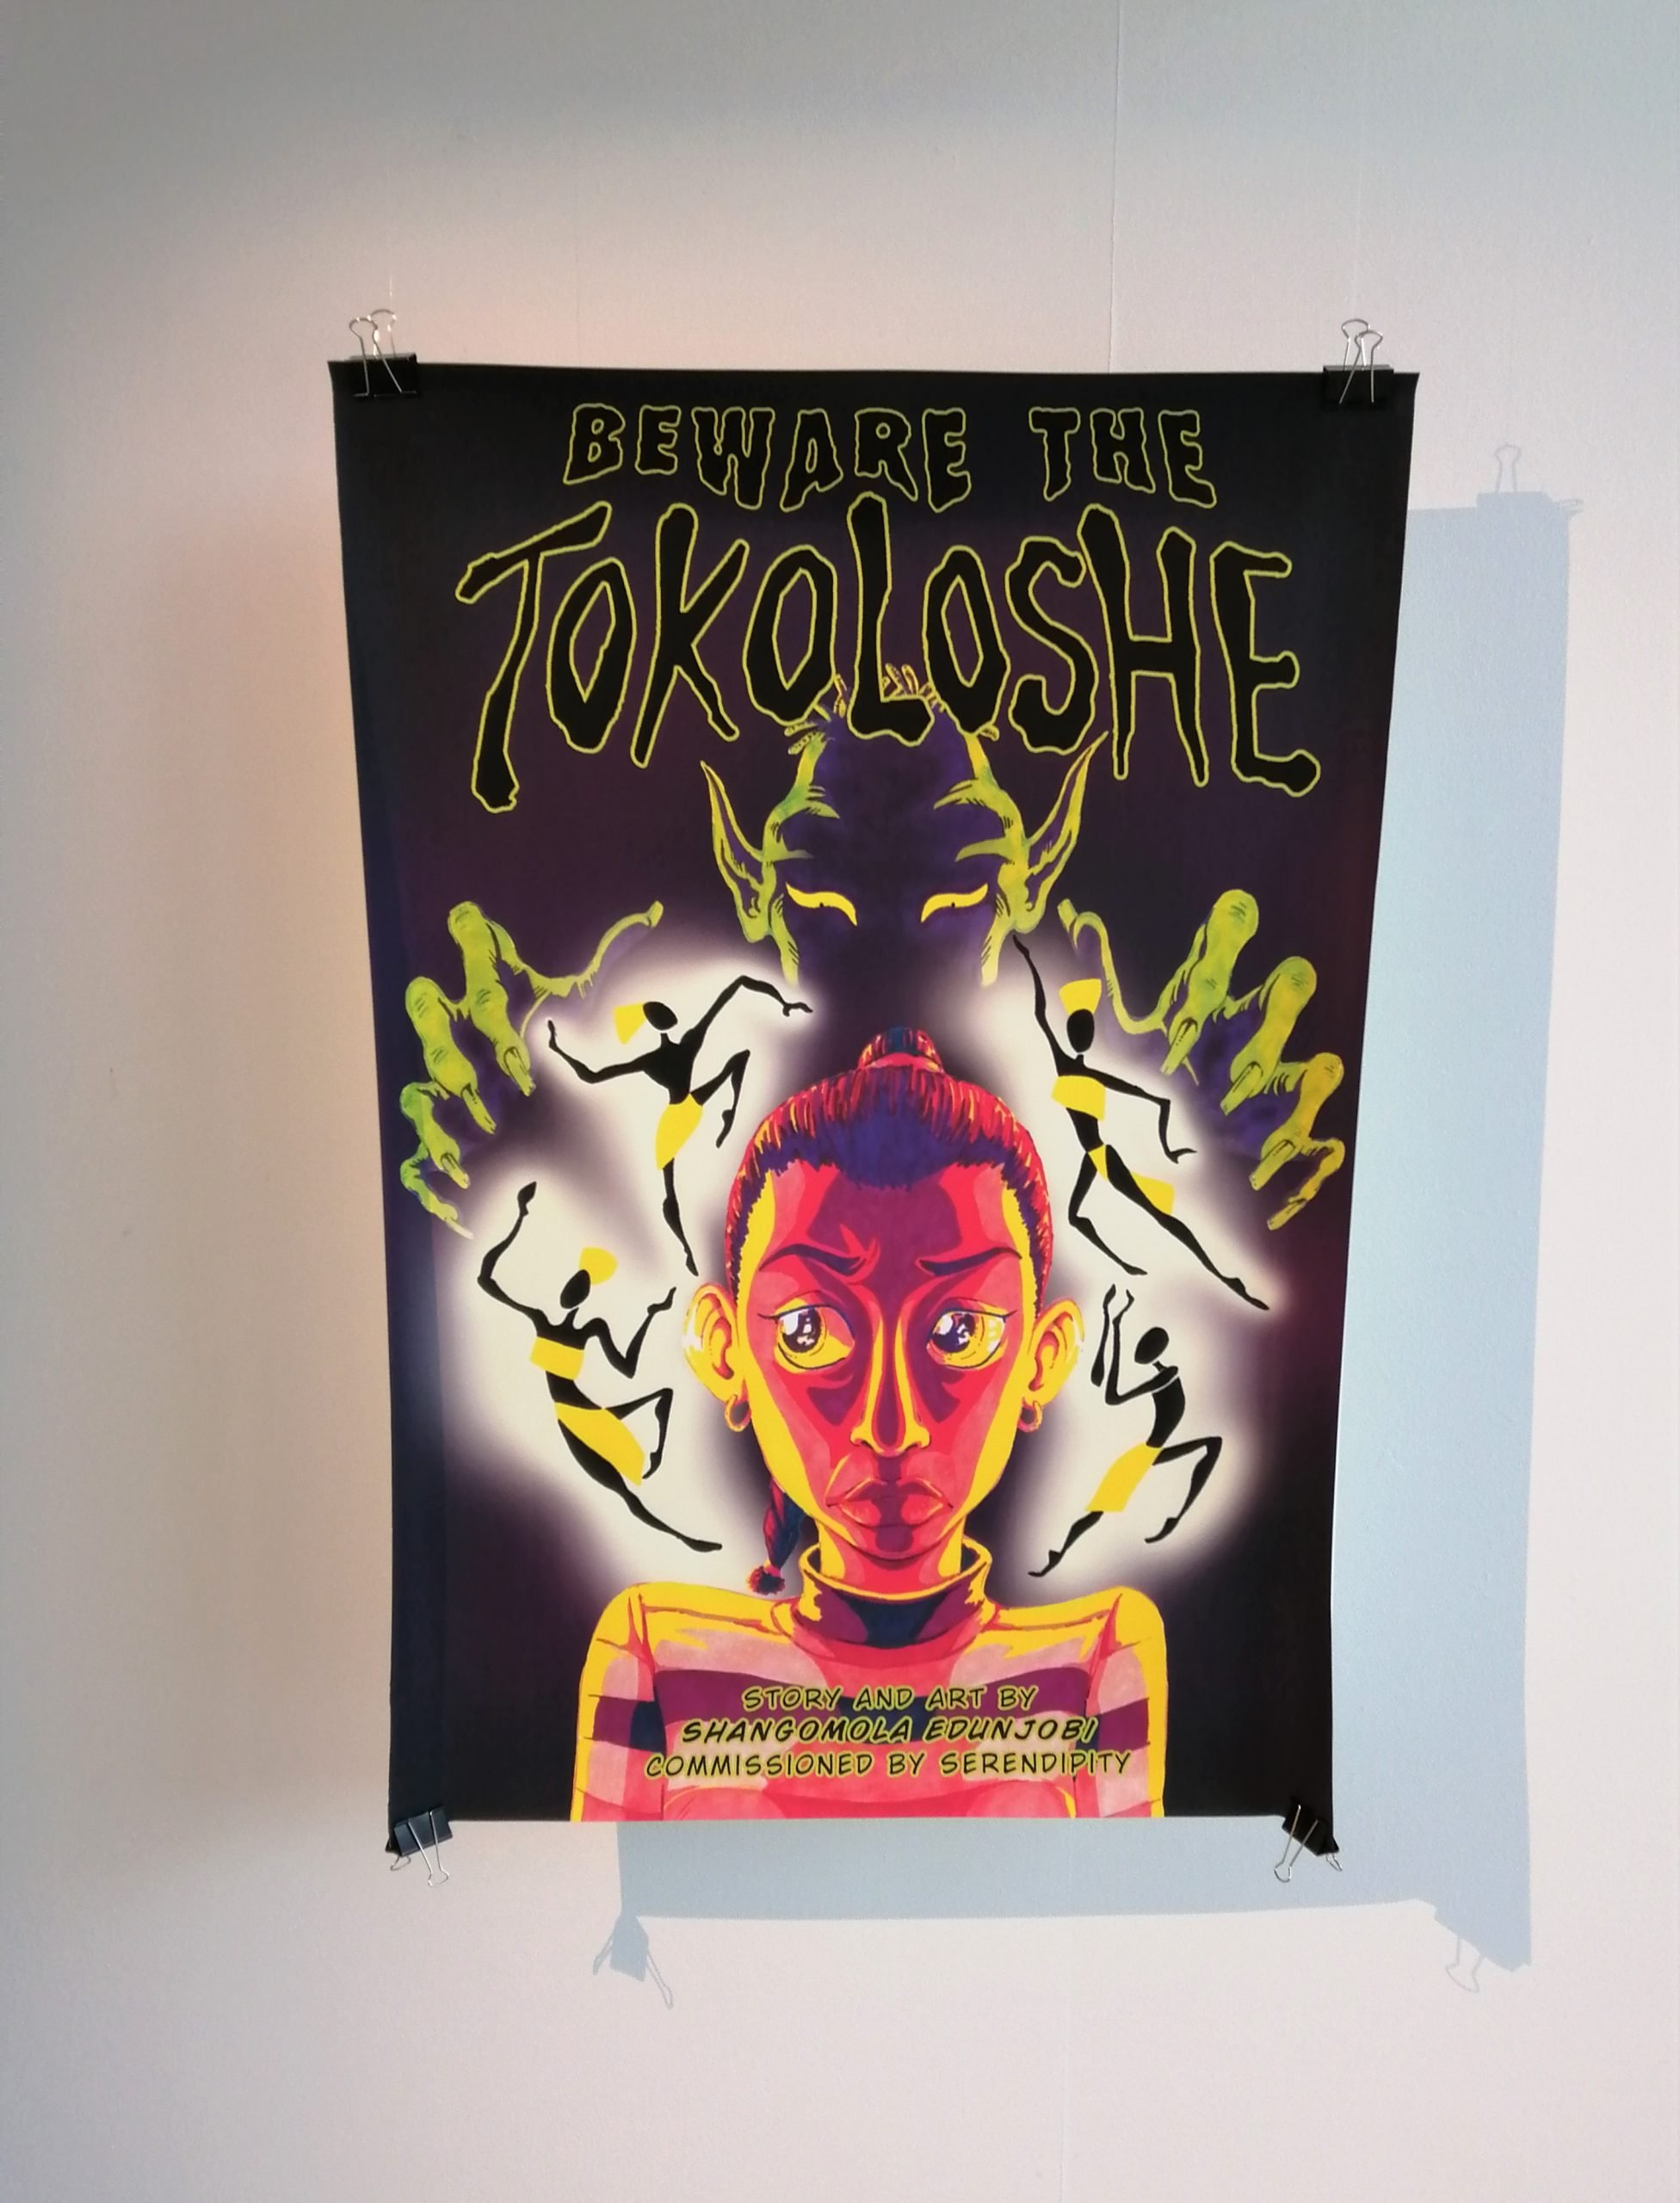 Beware of the Tokoloshe by Shangomola Edunjobi — Page Banner